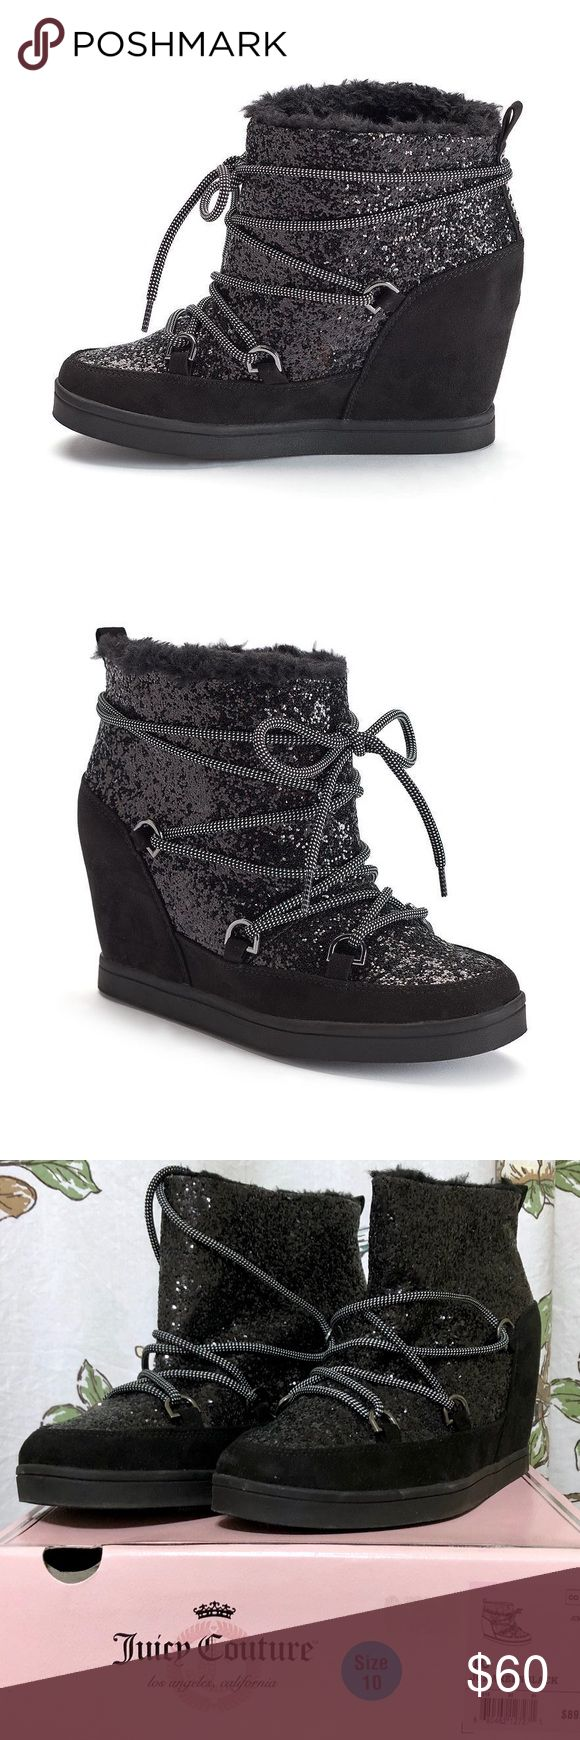 Juicy Couture Ankle Boot | Lace-up Wedge | Size 10 Brand new with box, never worn.   These women's Juicy Couture ankle boots feature a hidden wedge heel.  SHOE FEATURES Glitter detail Hidden wedge  SHOE CONSTRUCTION Microsuede upper Fabric, faux-fur lining TPR outsole  SHOE DETAILS Round toe Lace-up closure Padded footbed 4-in. heel Juicy Couture Shoes Ankle Boots & Booties #wedgesshoes